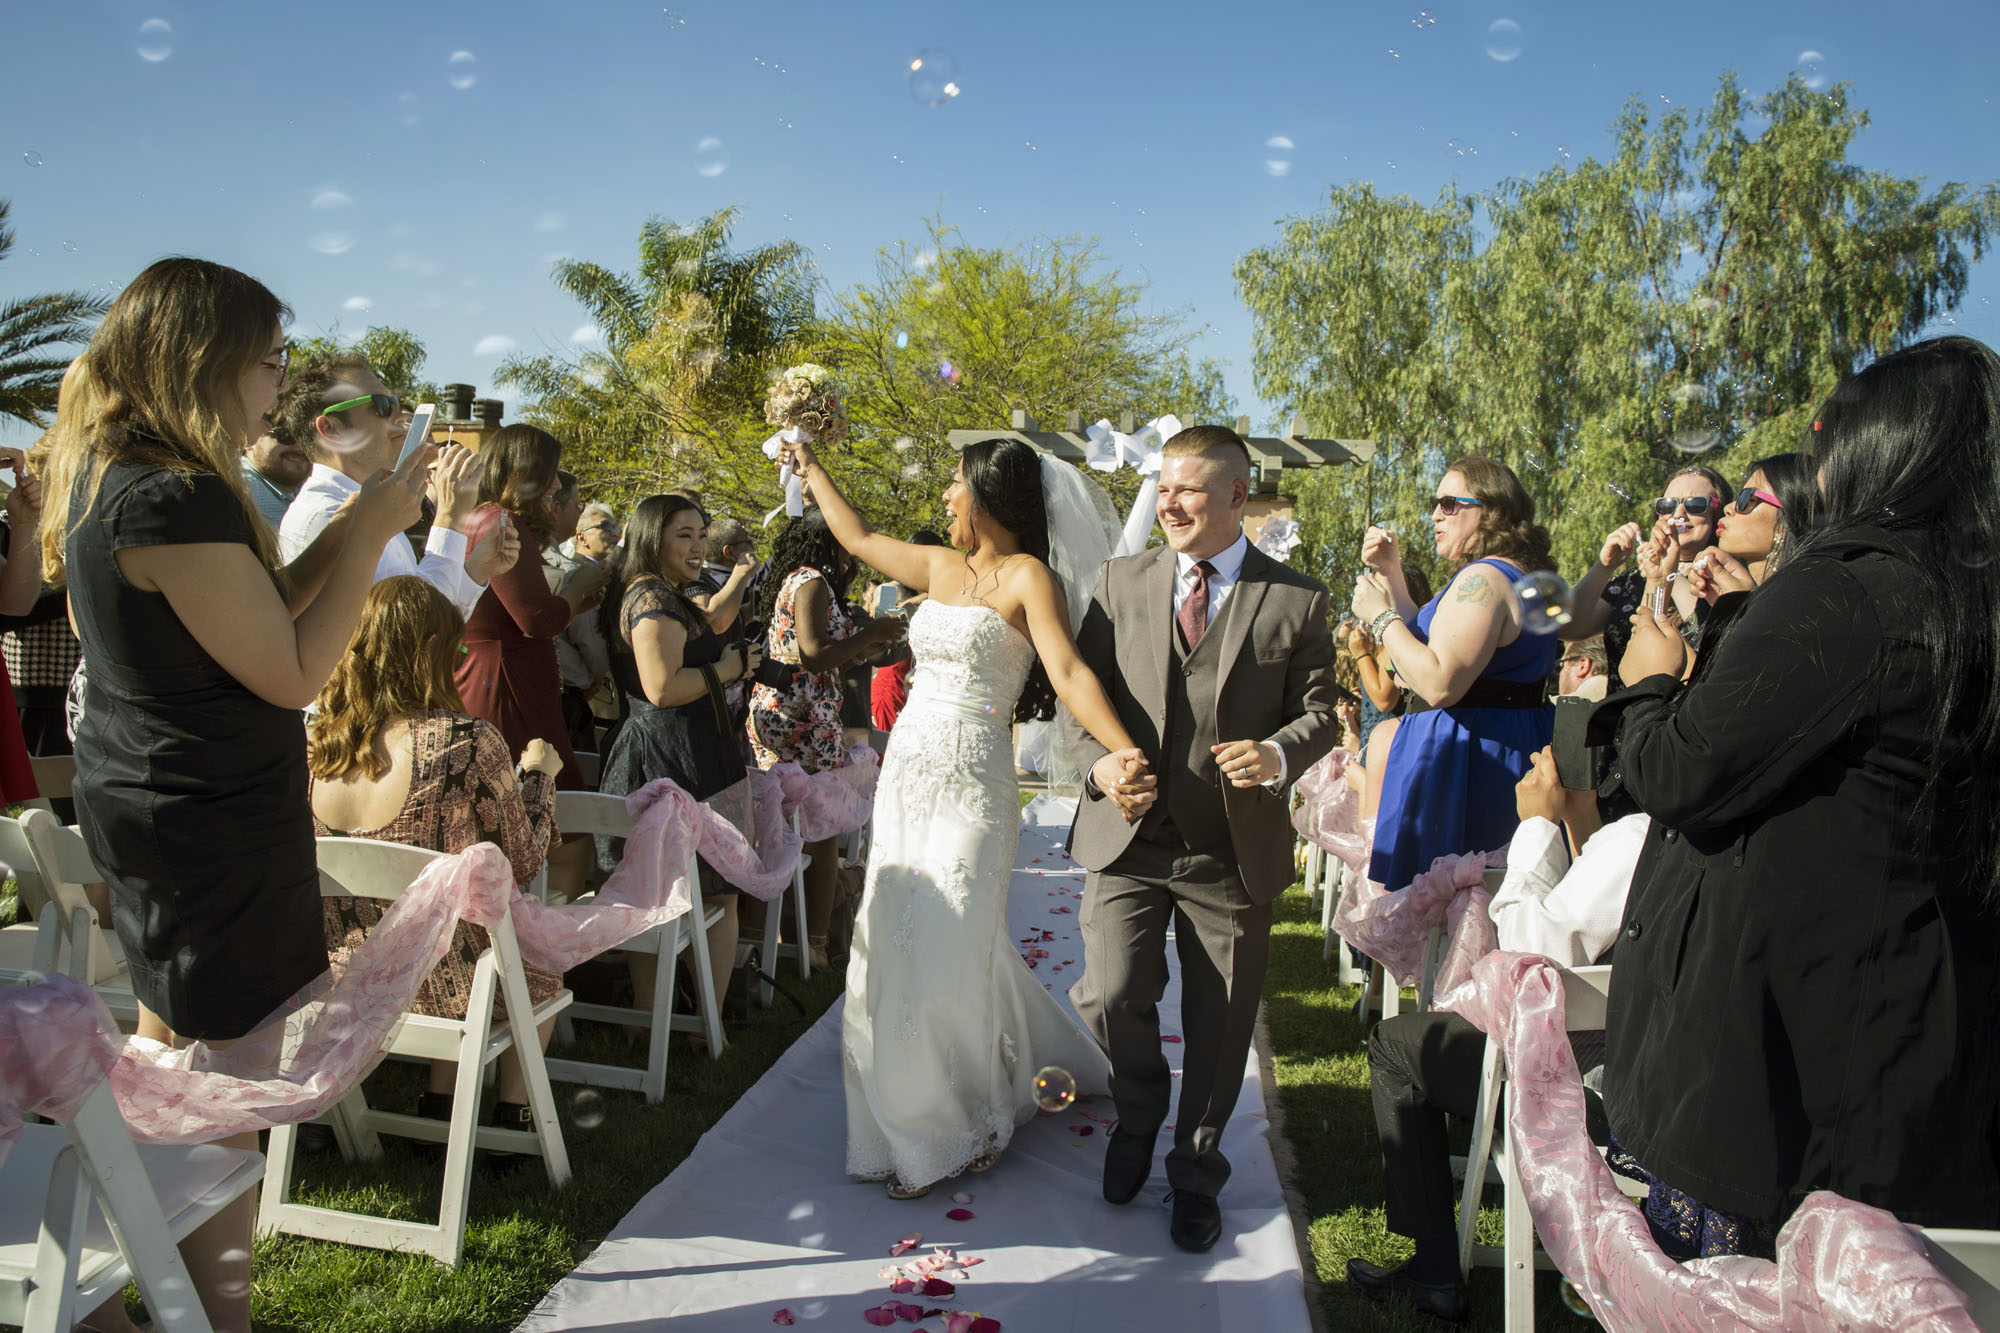 Bubble exit from ceremony